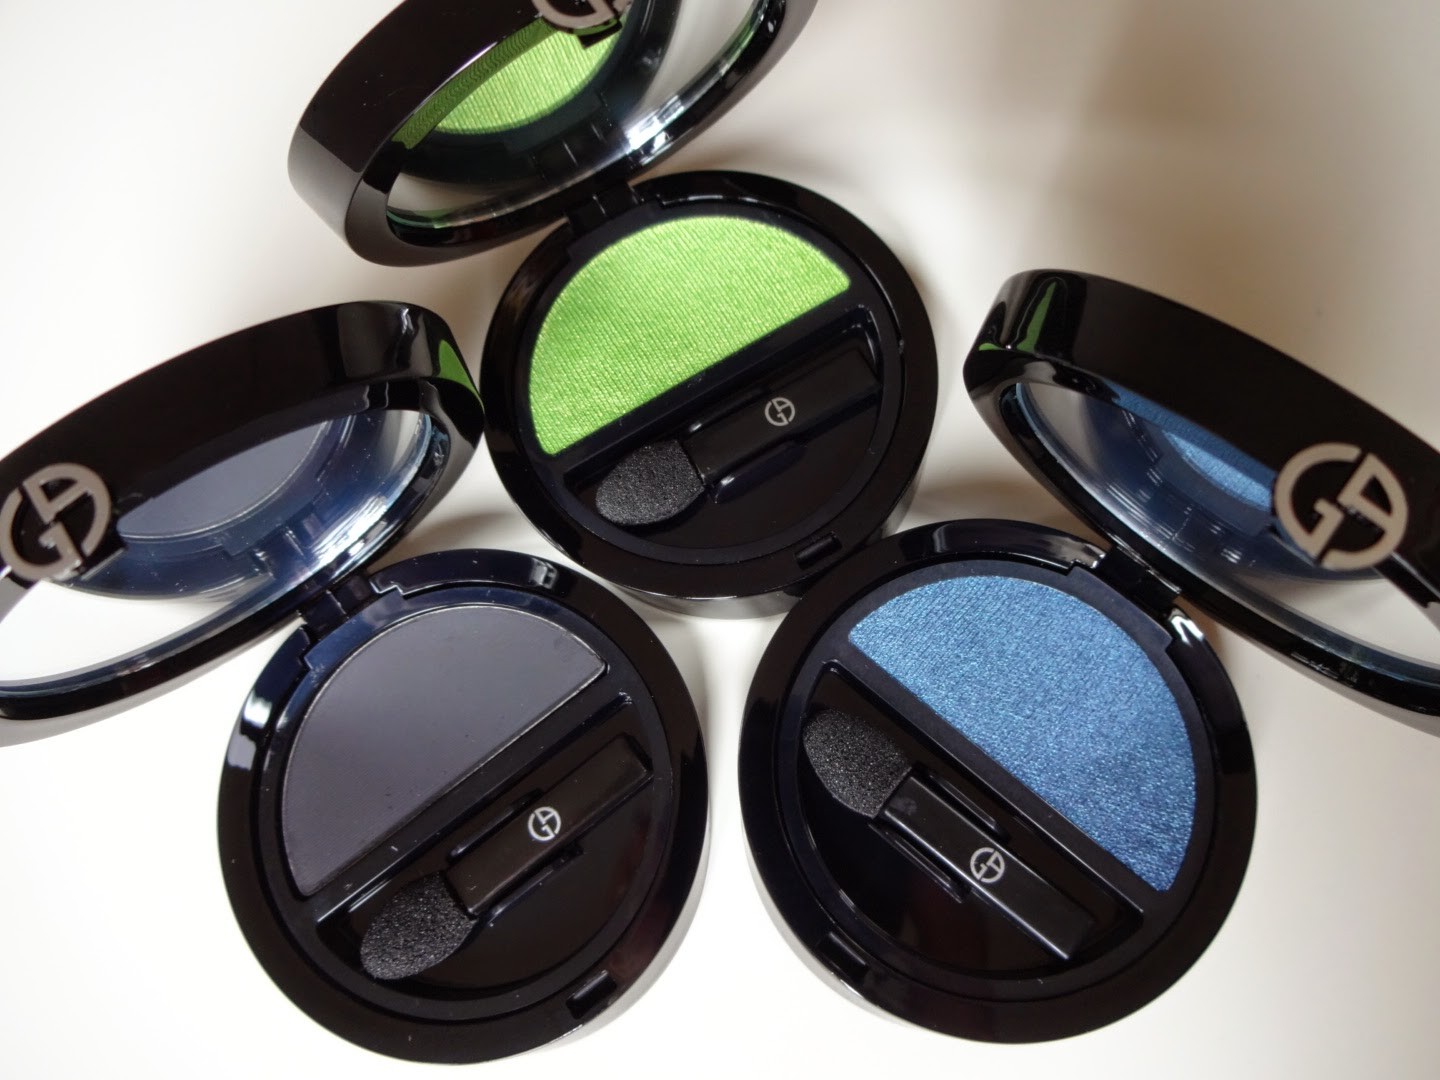 Giorgio Armani make up spring 2014 Eyes To Kill Solo Eyeshadow 1, 17, 18